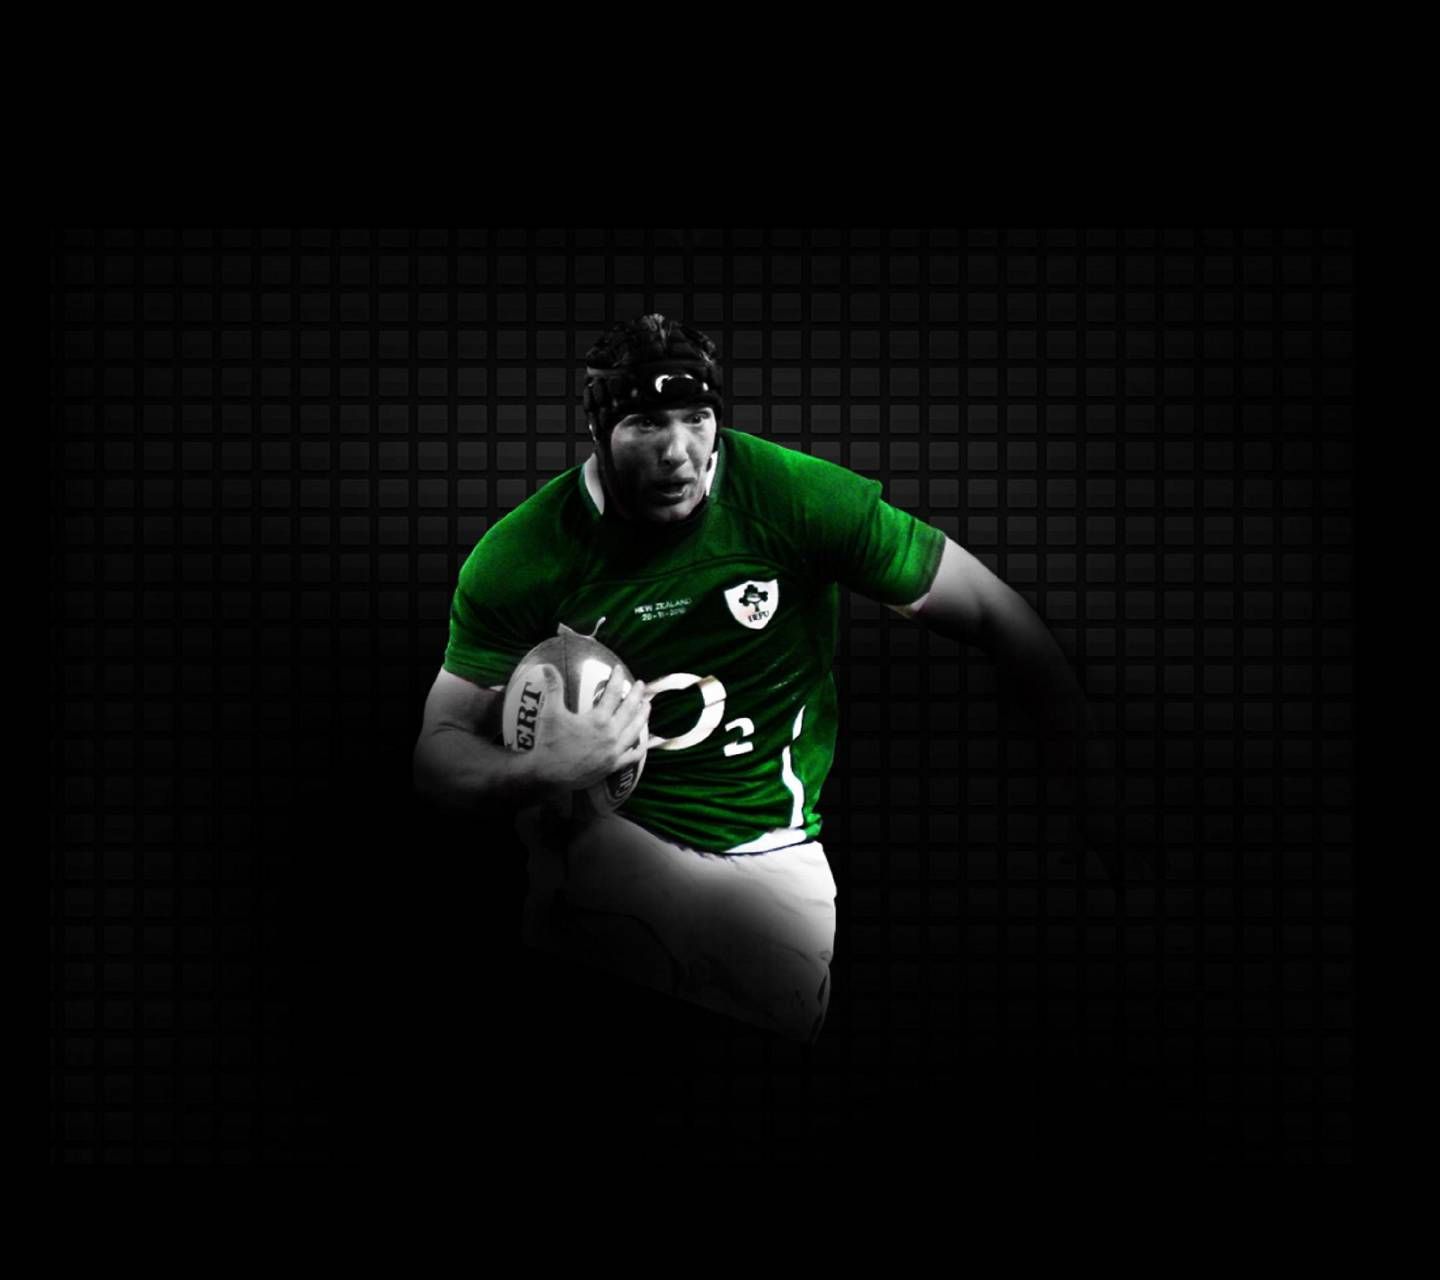 Ireland Rugby Wallpaper By Konig E8 Free On Zedge